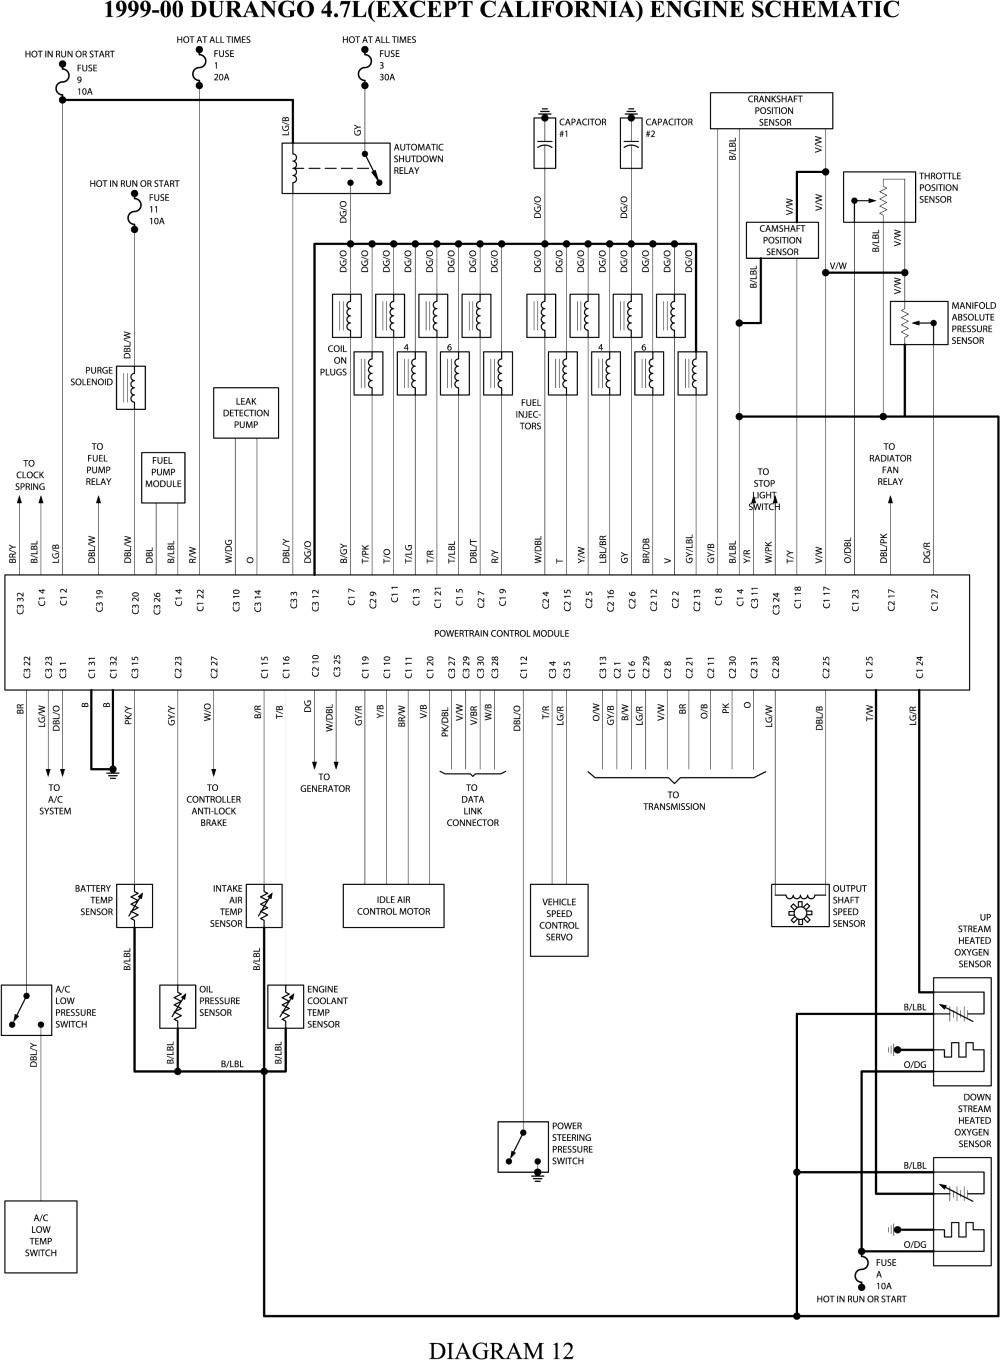 2001 Dodge Ram Pcm Wiring Diagram FULL HD Version Wiring Diagram -  LUND-DIAGRAM.TACCHETTIDIFERRO.ITDiagram Database - Diagram Database And Images